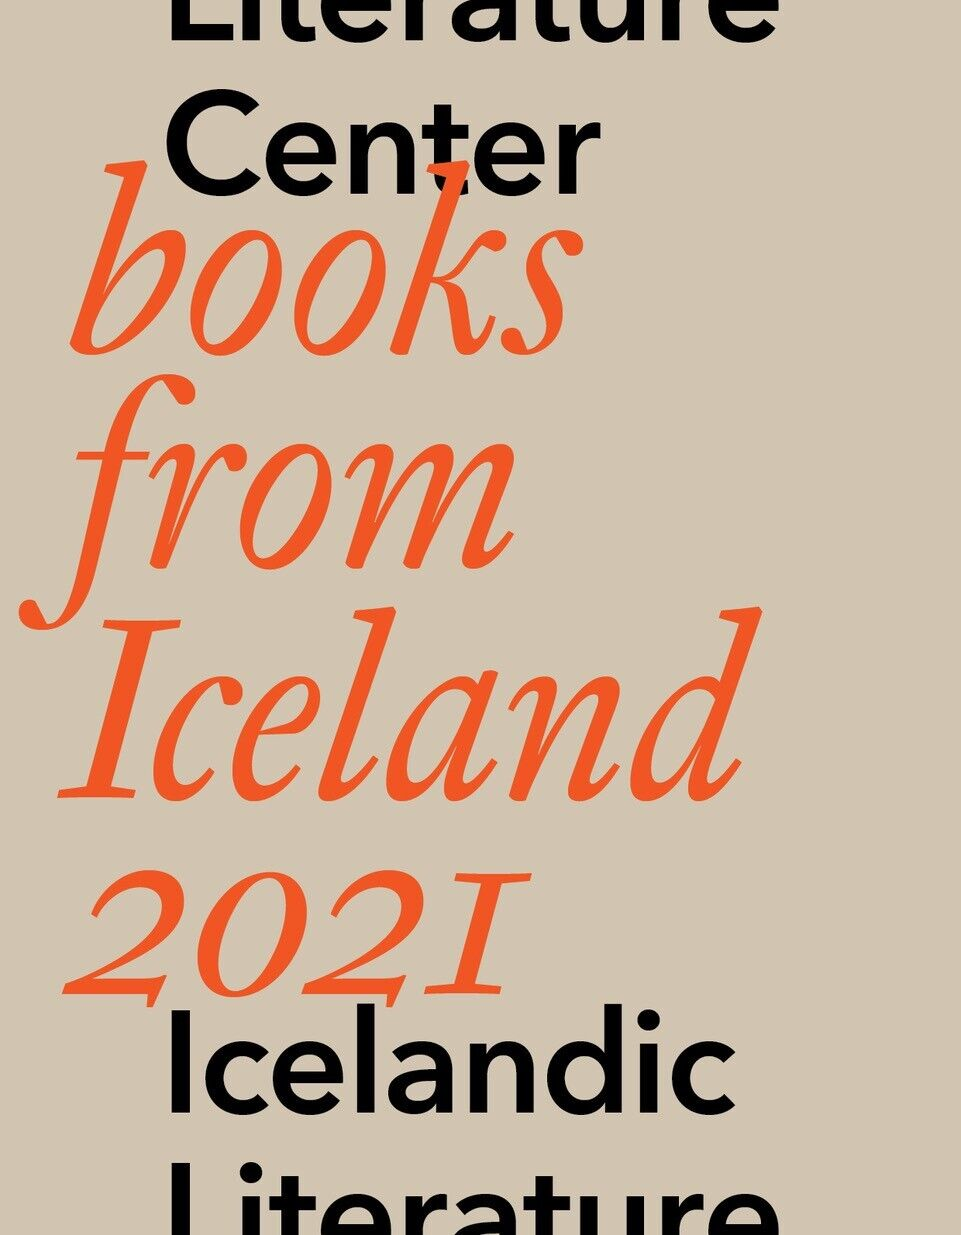 Books from Iceland 2021